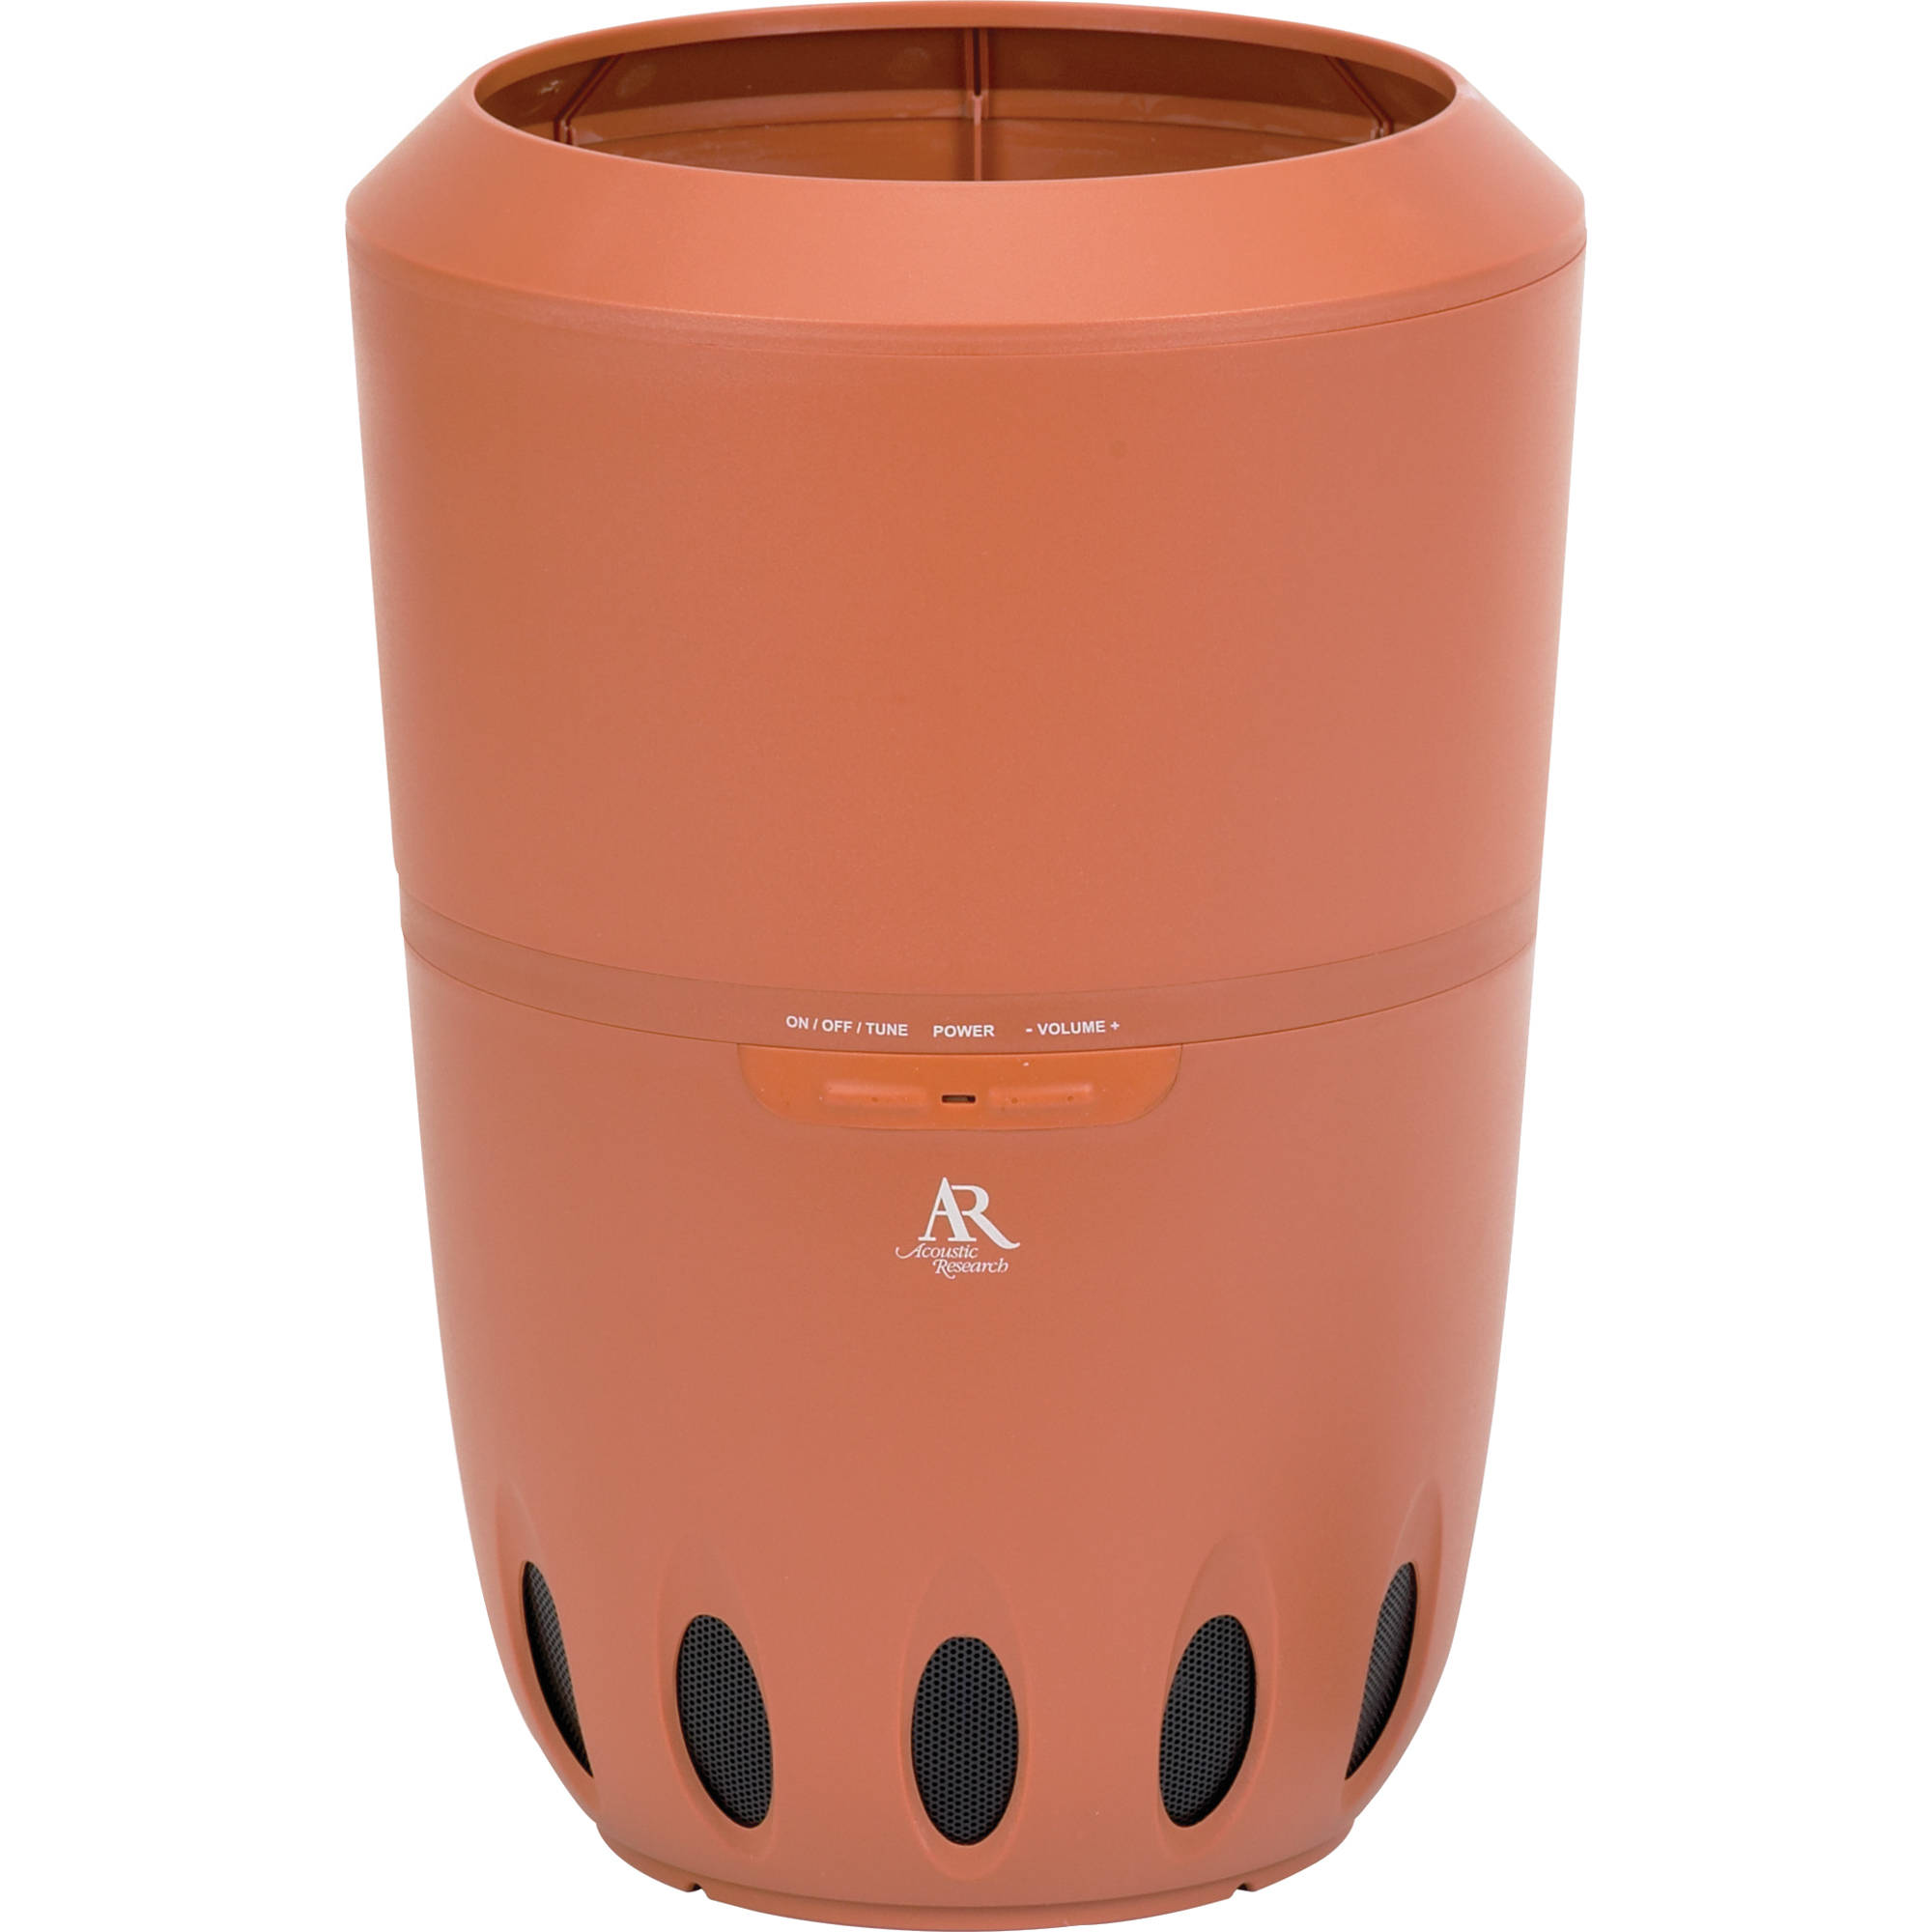 Outdoor Planter Speakers Acoustic research aw828 wireless indooroutdoor speaker aw828 acoustic research aw828 wireless indooroutdoor speaker with planter workwithnaturefo